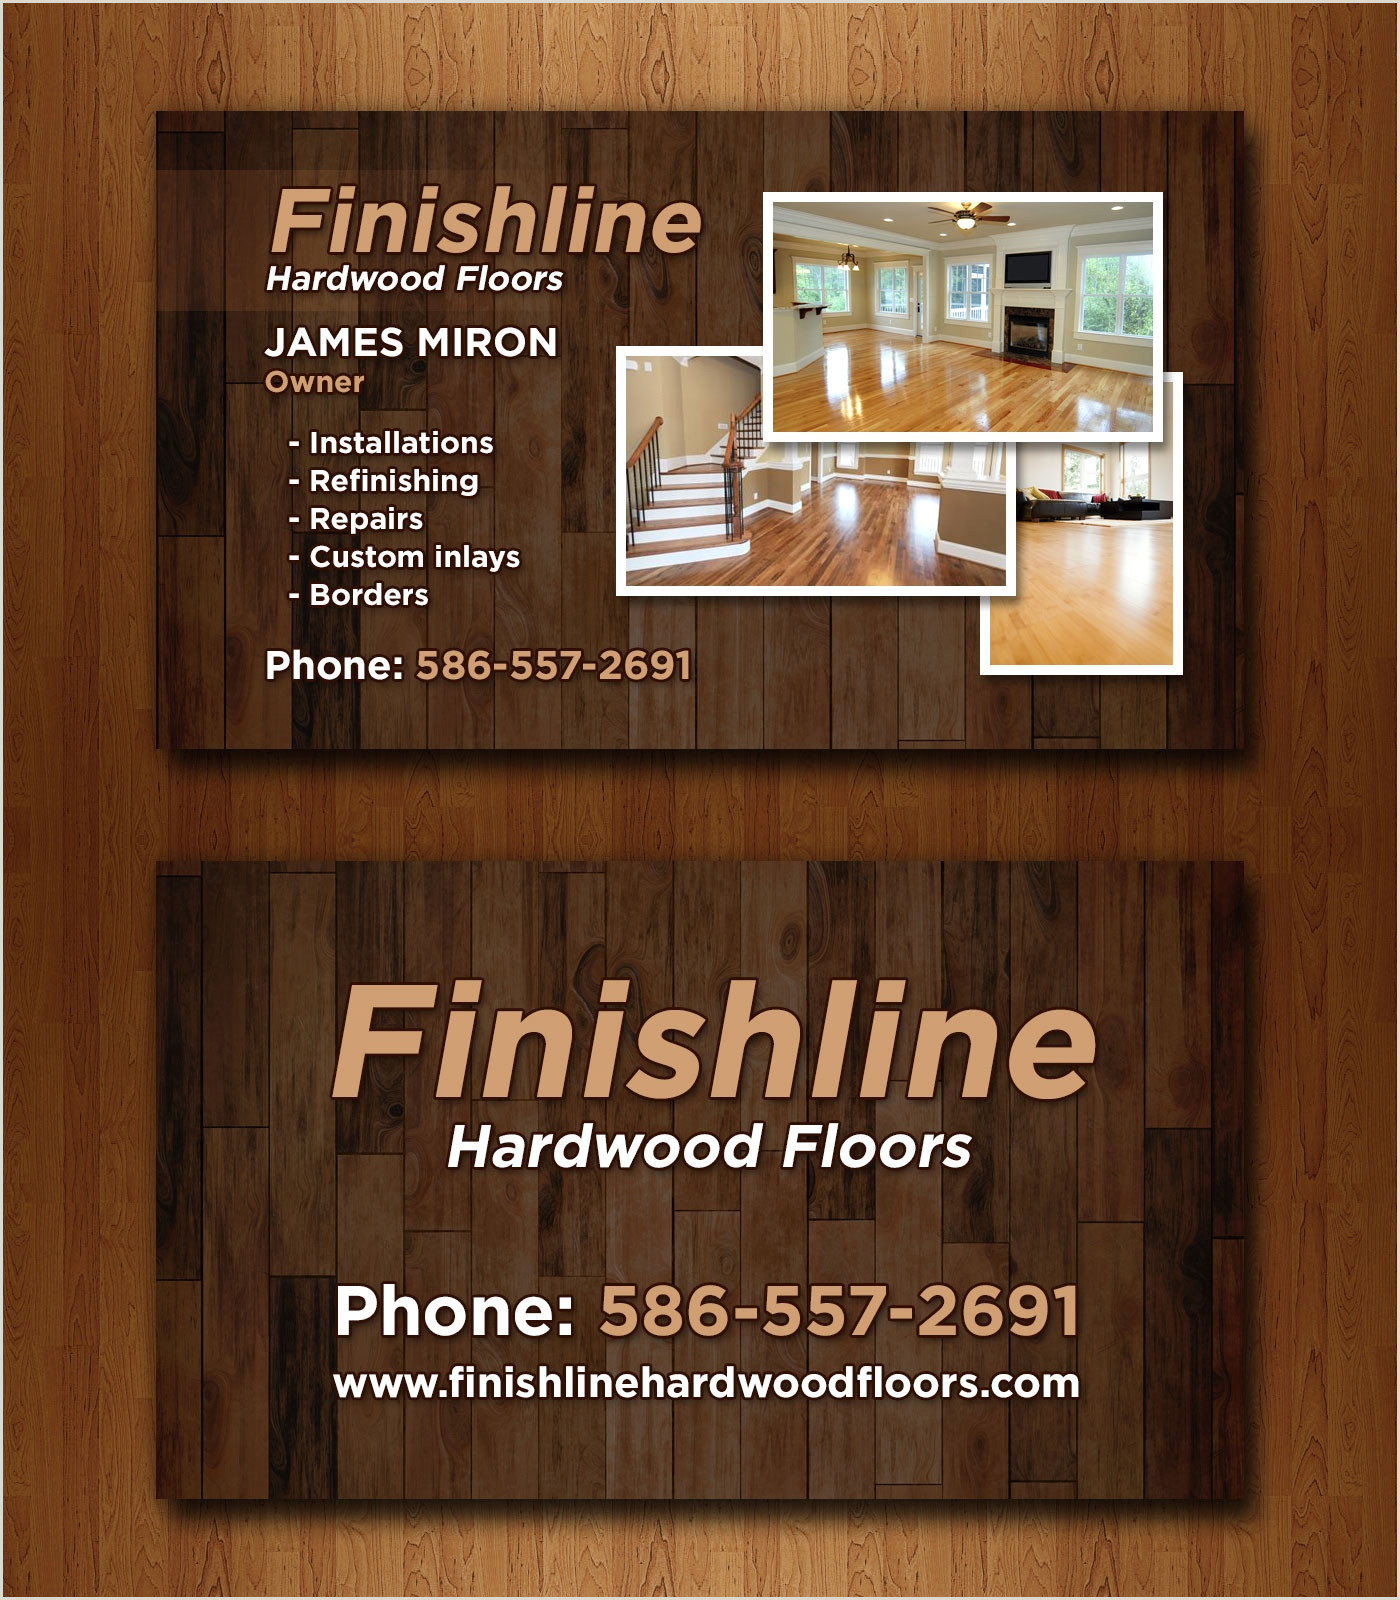 Personal Information Cards Template 14 Popular Hardwood Flooring Business Card Template